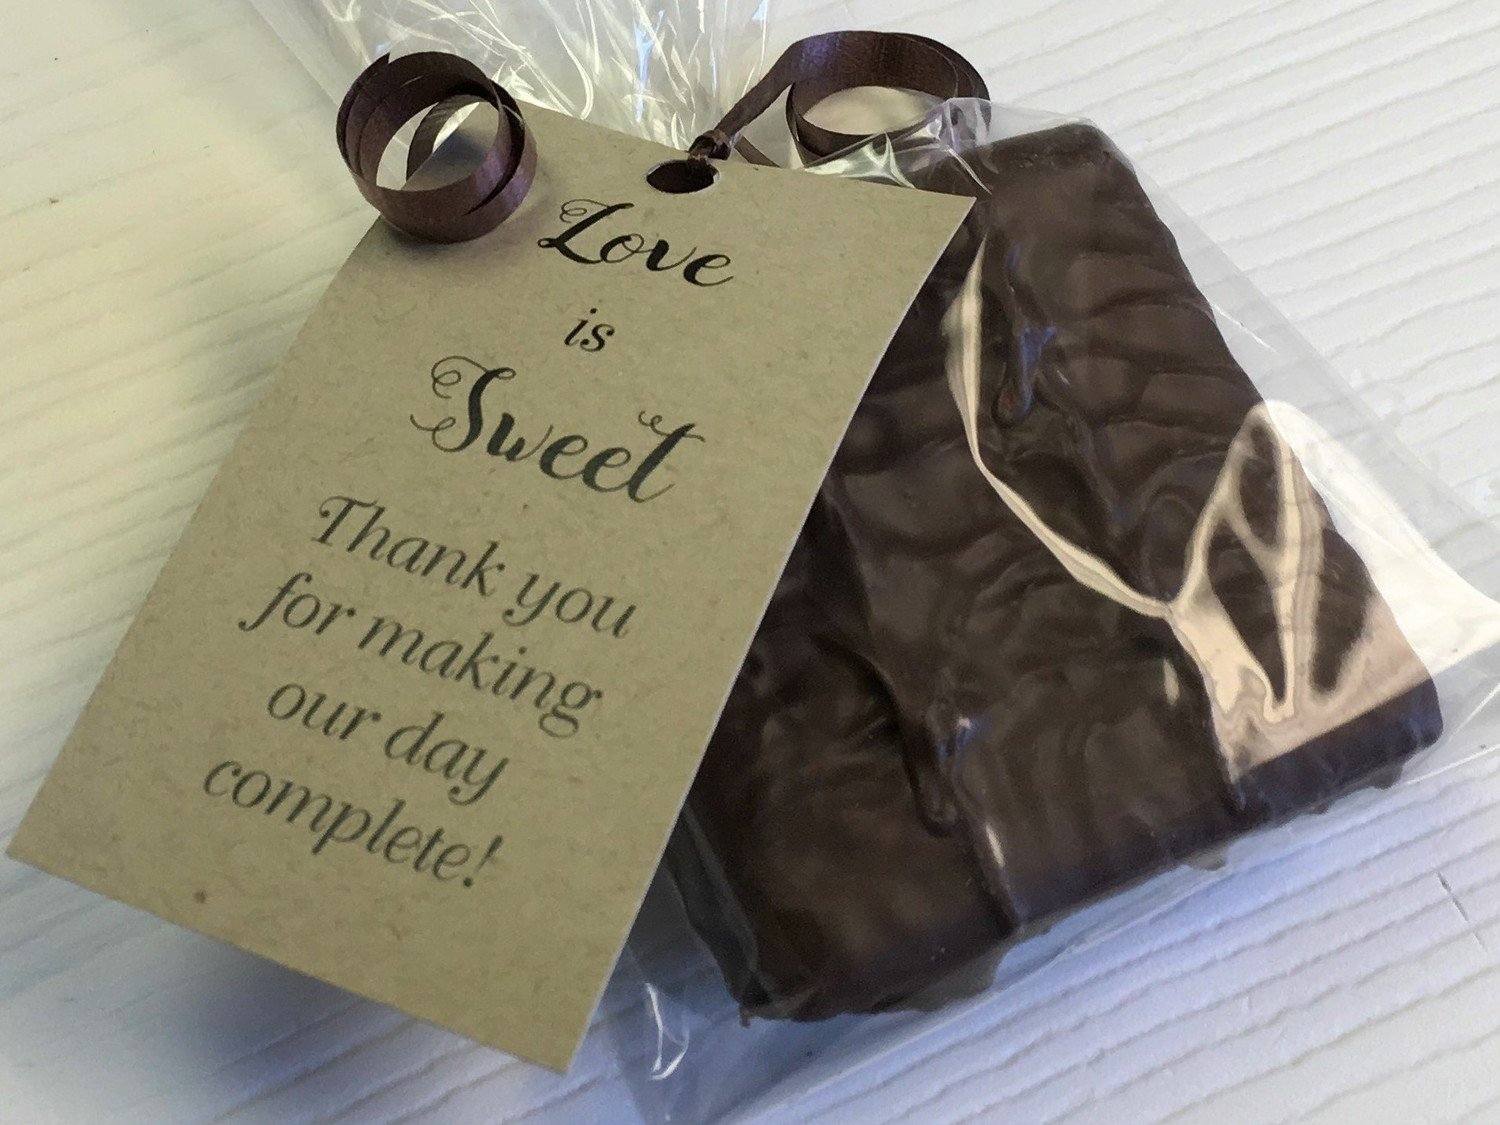 25 - Single Milk and/or Chocolate Coated Graham Cracker Favor with personalized tag (optional). 10 day pre orders over 50